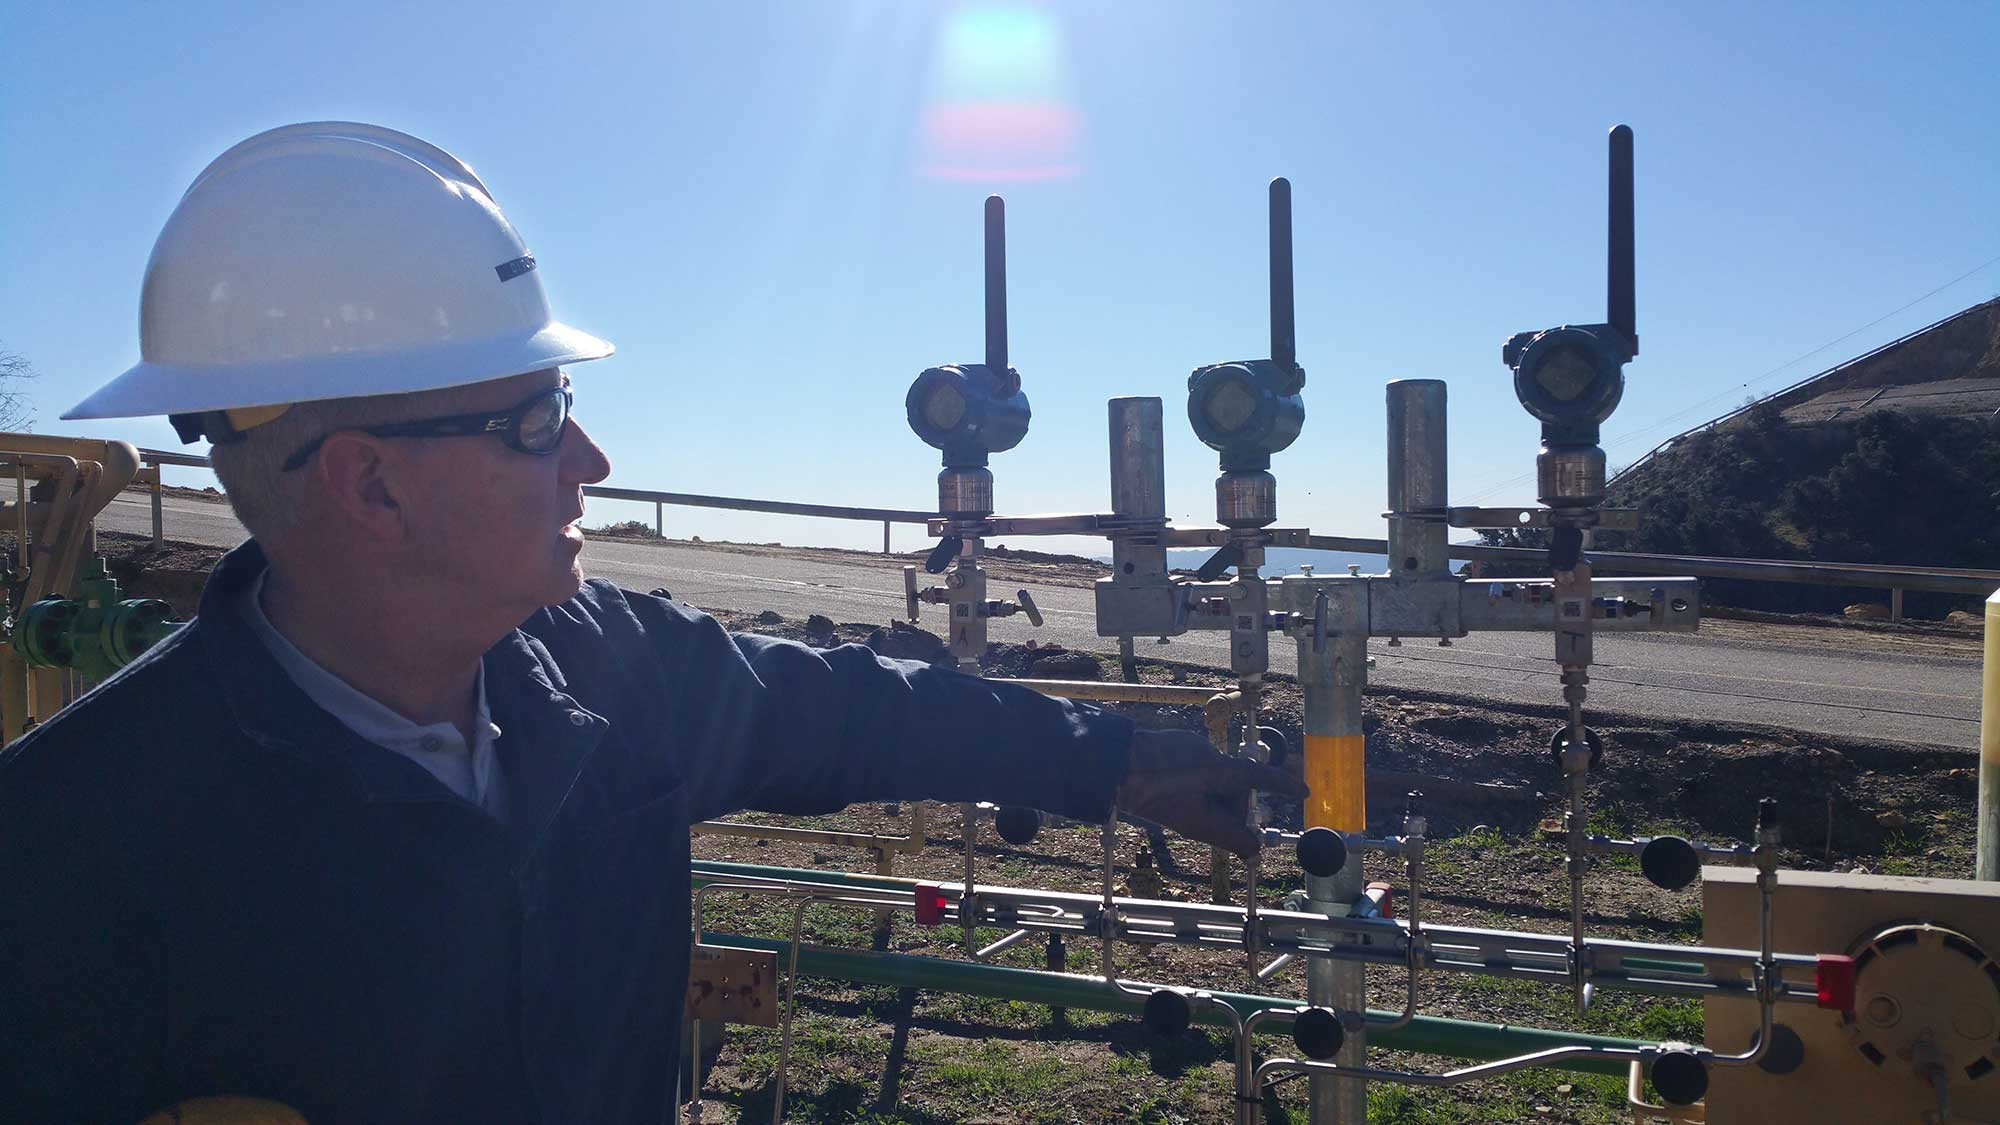 Technician viewing gauge readings at Aliso Canyon site